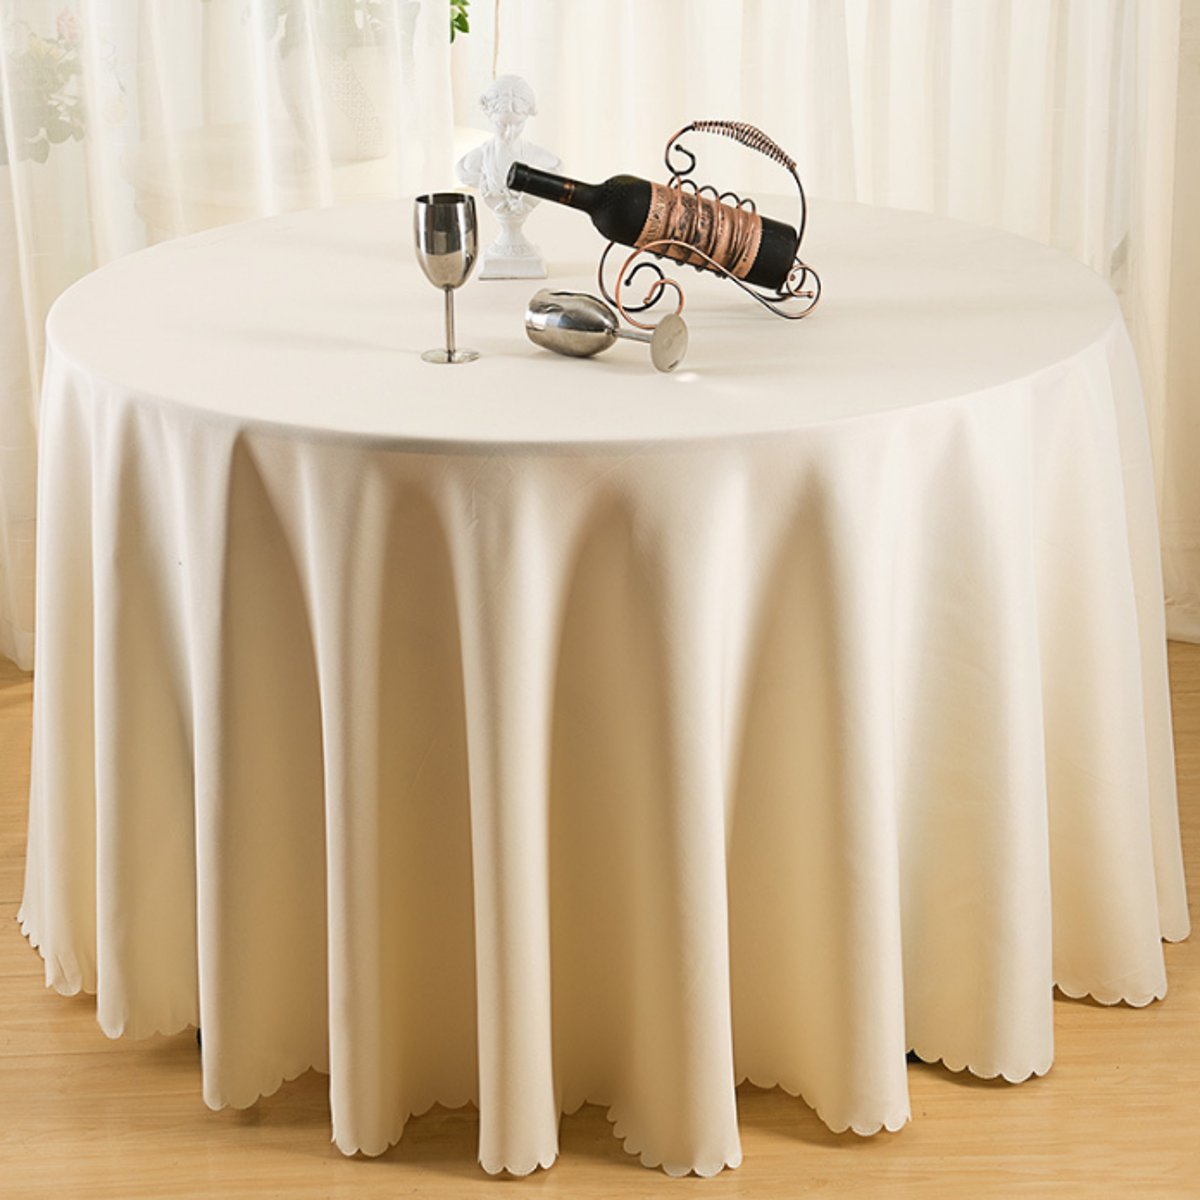 Polyester Round Tablecloth Wedding Party Banquet Dining Table Cloth Covers Runner Home Textiles Accessories 4 Sizes Beige